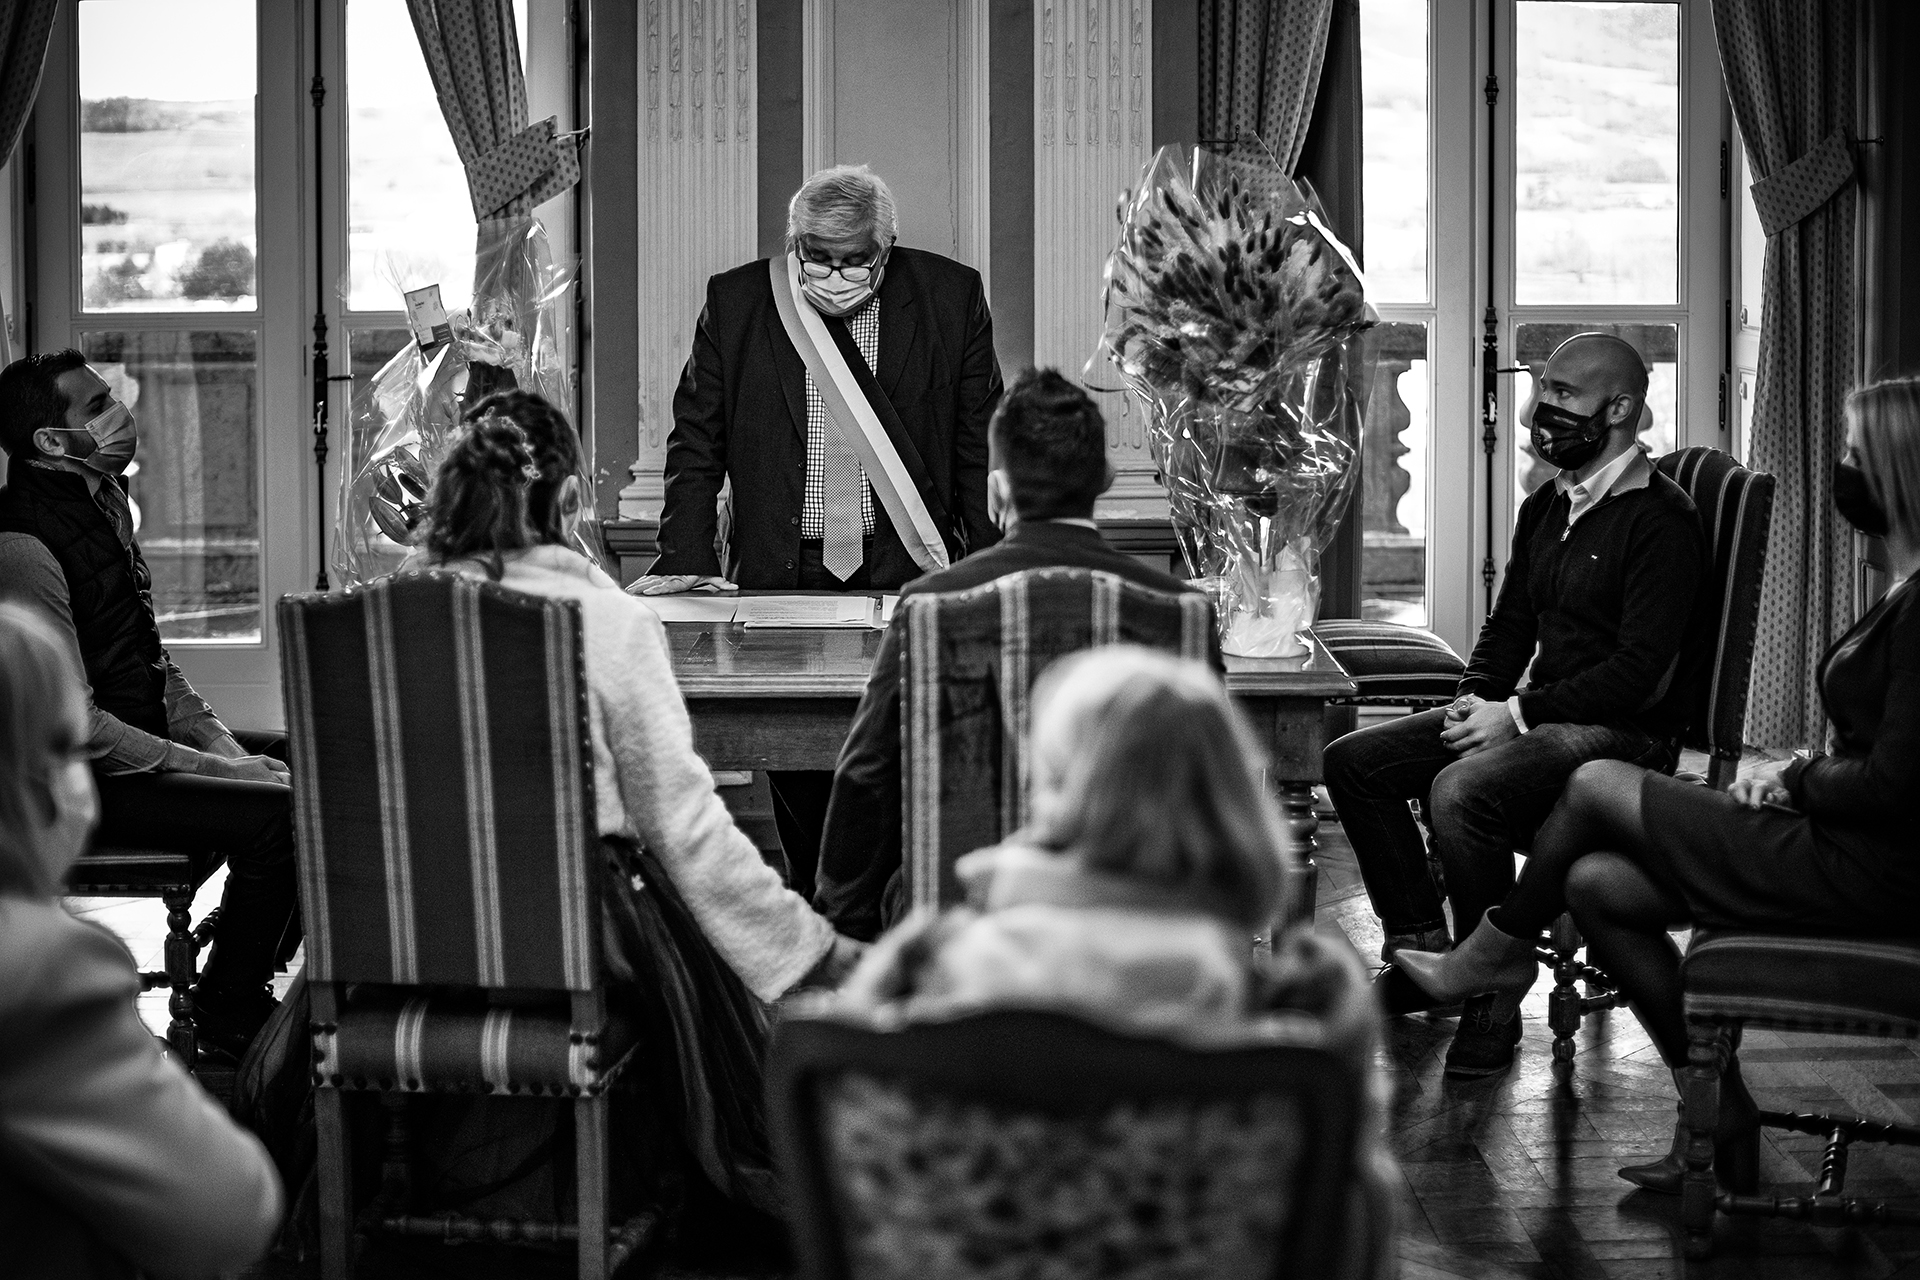 Puy de Dôme Town Hall Wedding Photos | The couple holds hands as the ceremony begins